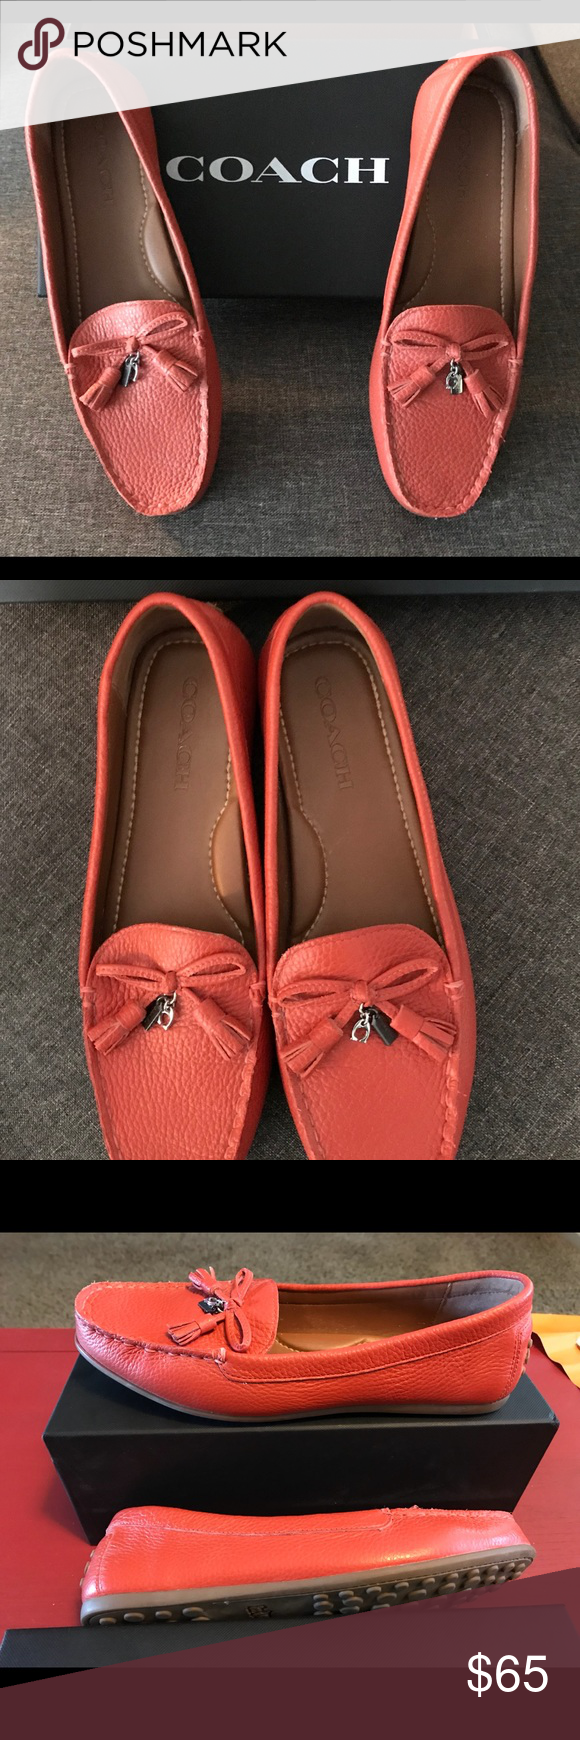 9e98cbbeaae Coach shoes Tassel Greenwich Driver leather. Worn 1 time excellent  condition. Color  orange red Coach Shoes Flats   Loafers